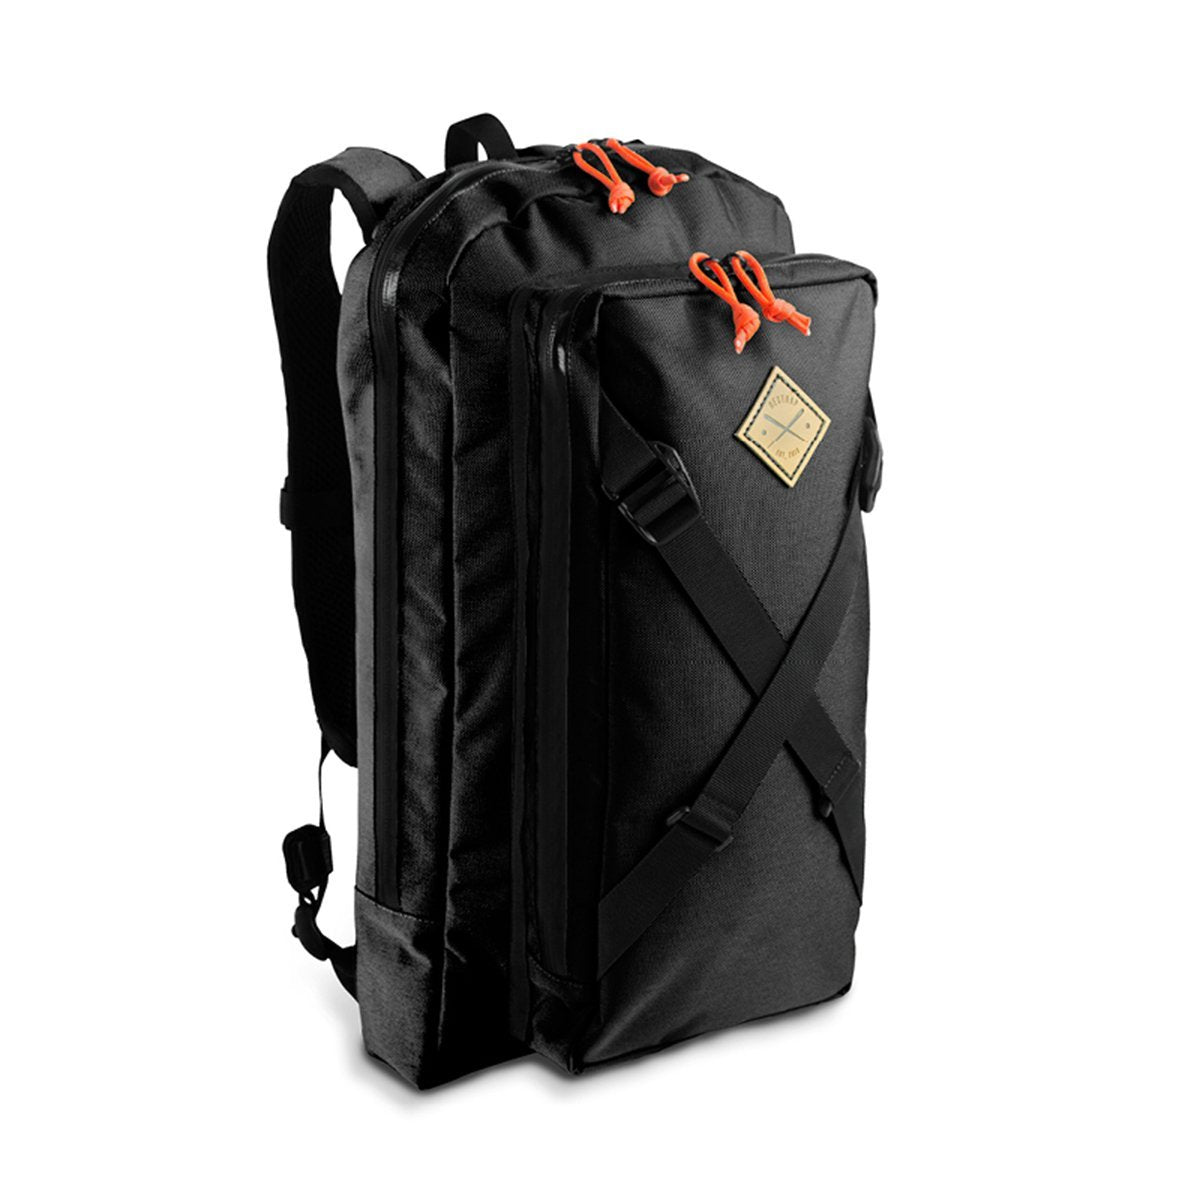 Restrap | Sub Backpack | Waterproof Cycling Backpack | Bike Backpack | Black